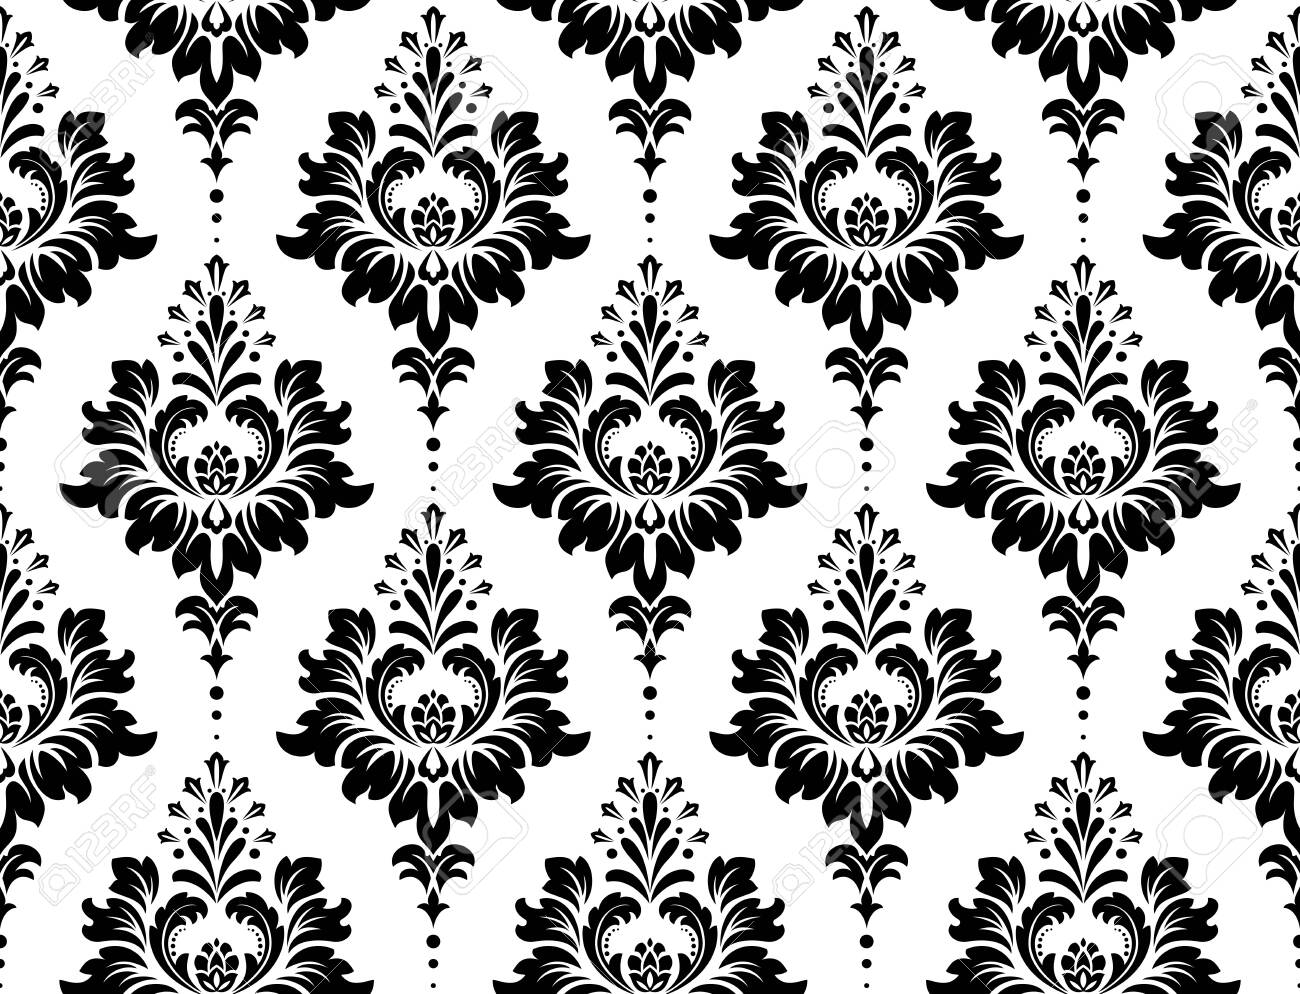 Wallpaper in the style of Baroque. Seamless vector background. White and black floral ornament. Graphic pattern for fabric, wallpaper, packaging. Ornate Damask flower ornament - 121887042